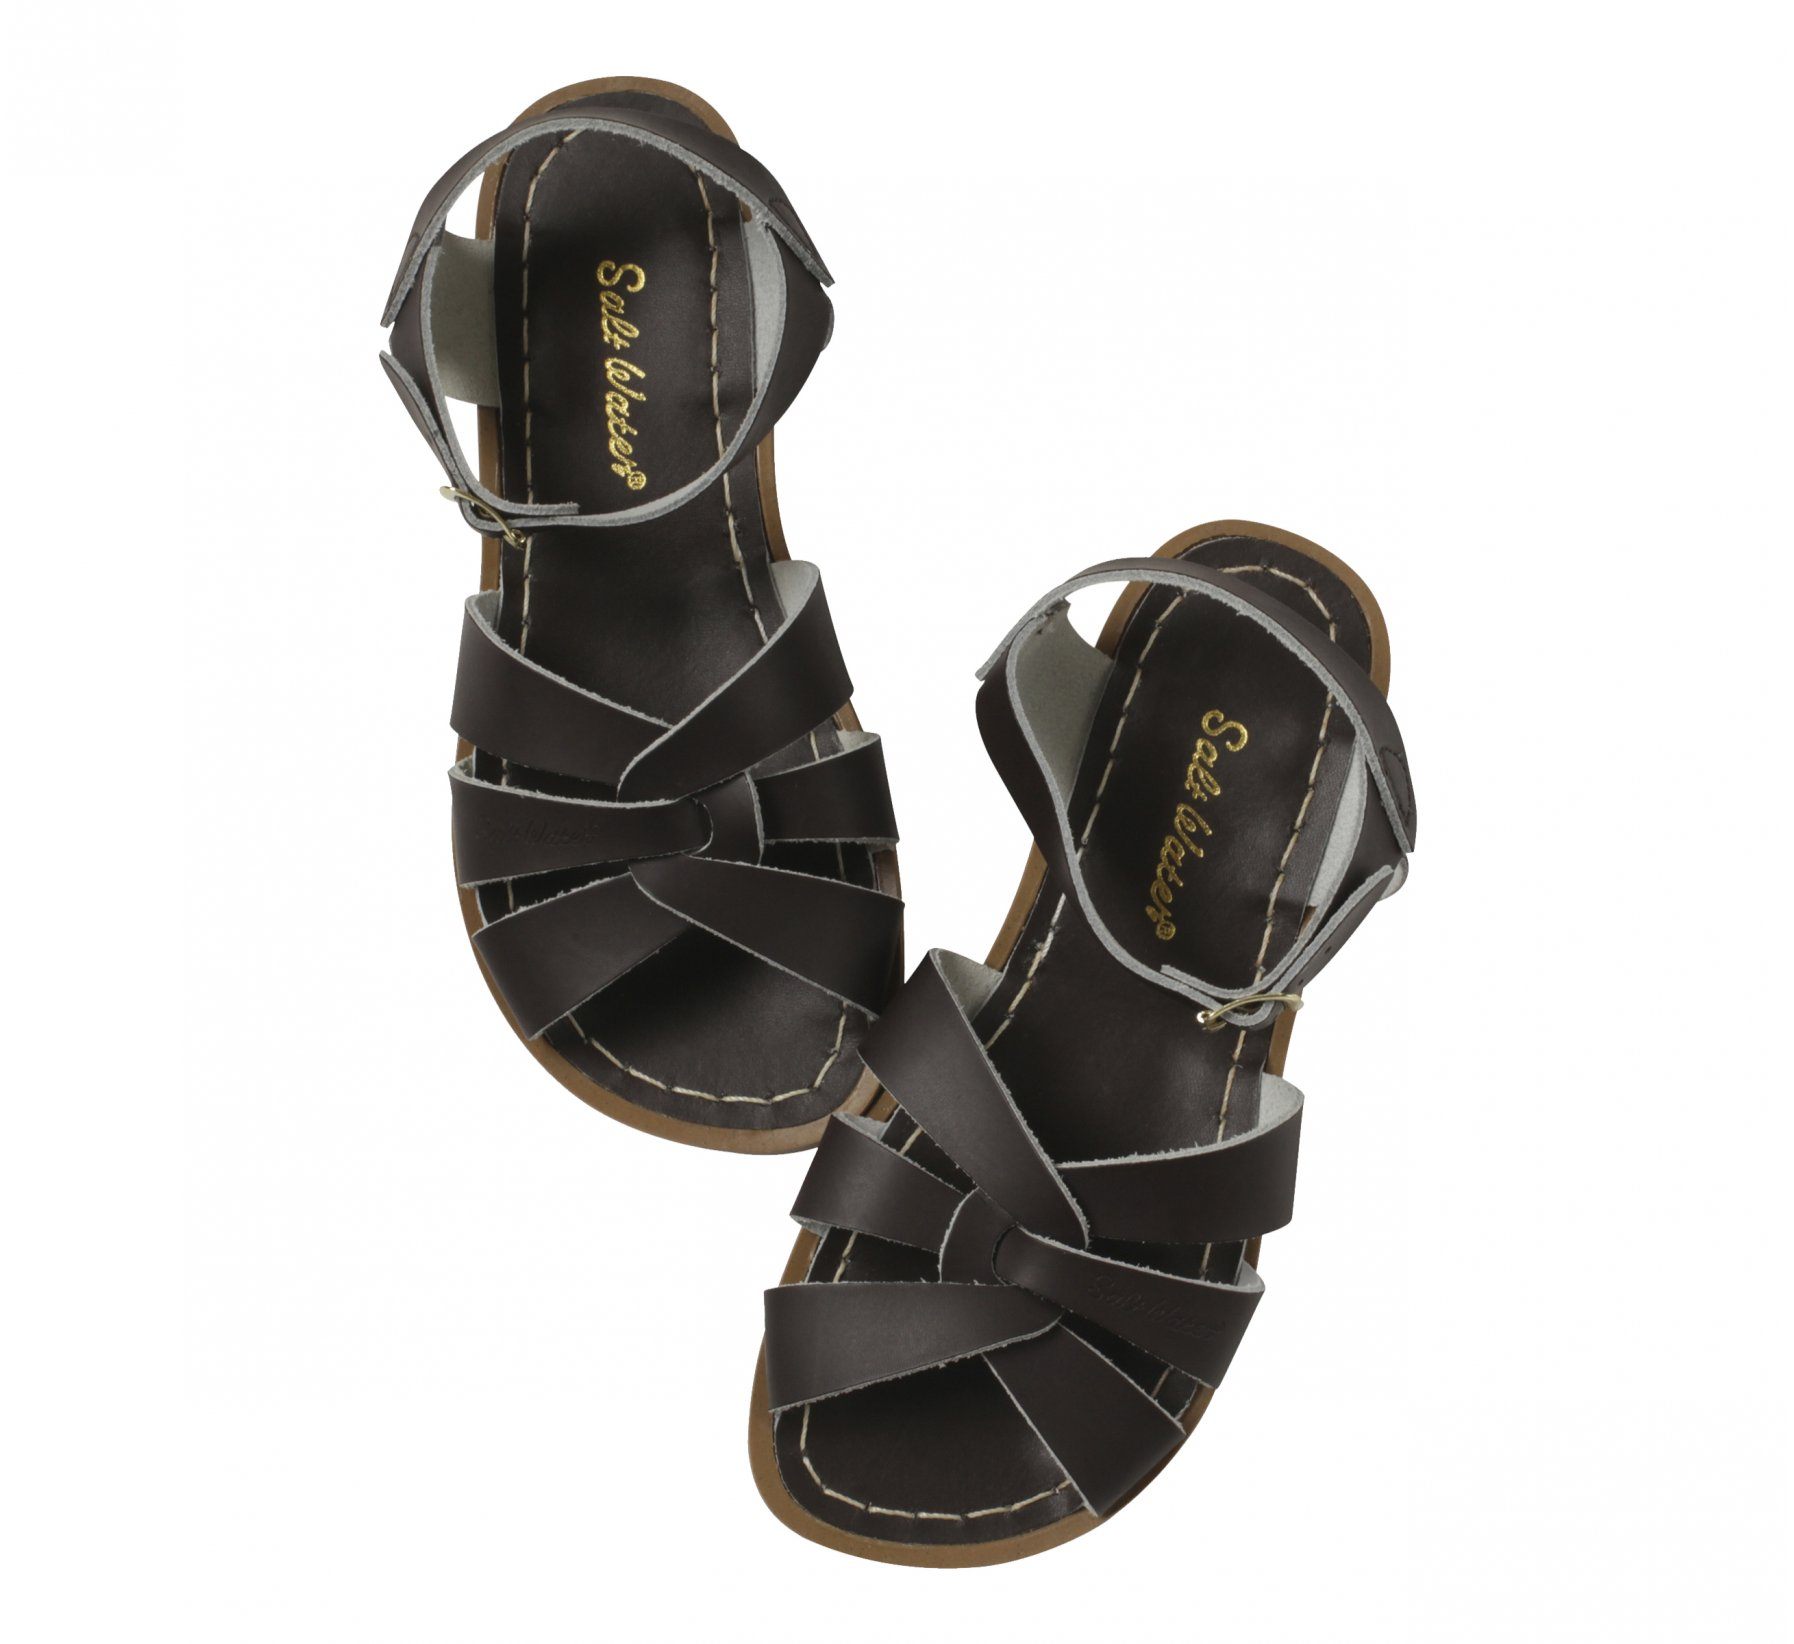 Original Brown - Salt Water Sandals